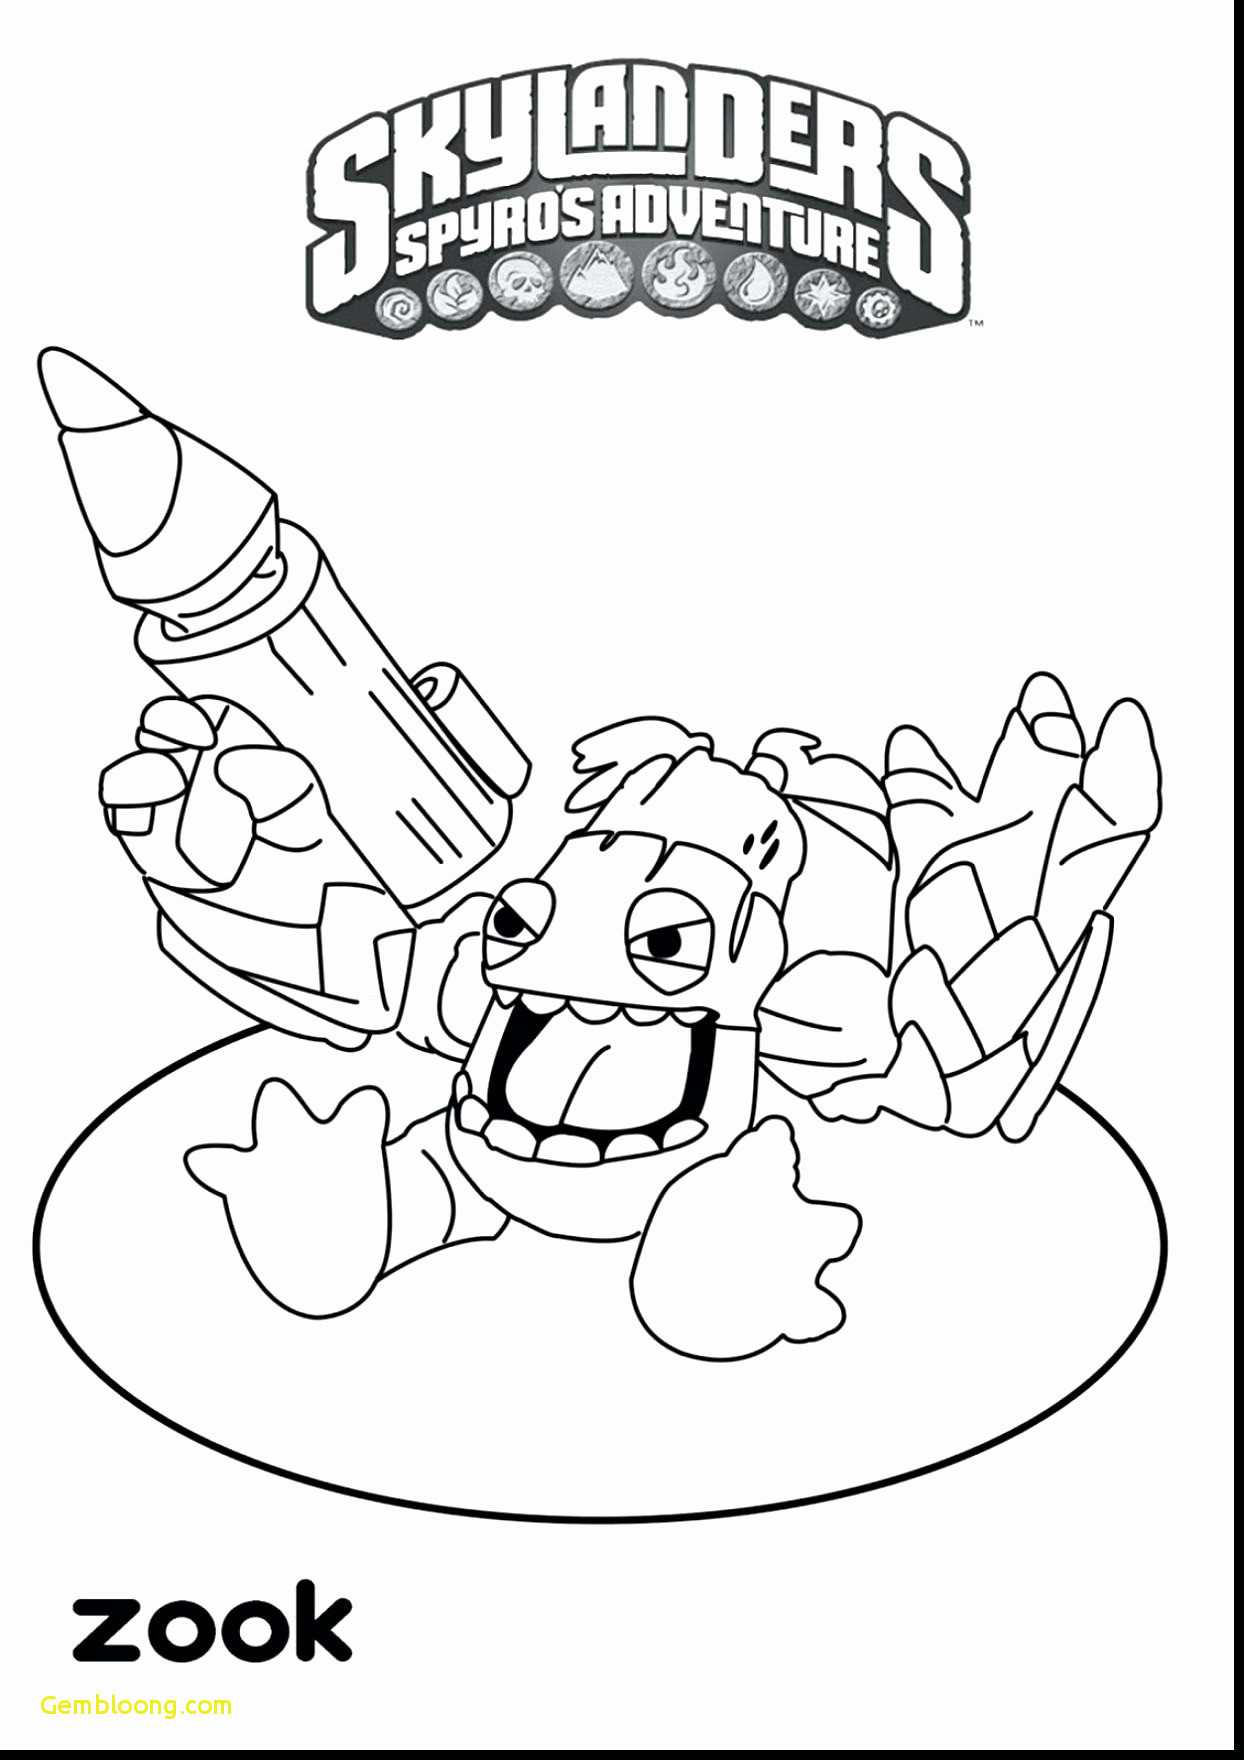 rainbow rock coloring pages Collection-Cthulhu Coloring Pages Awesome Coloring Pages Printables Unique Coloring Printables 0d – Fun Time s 6-s